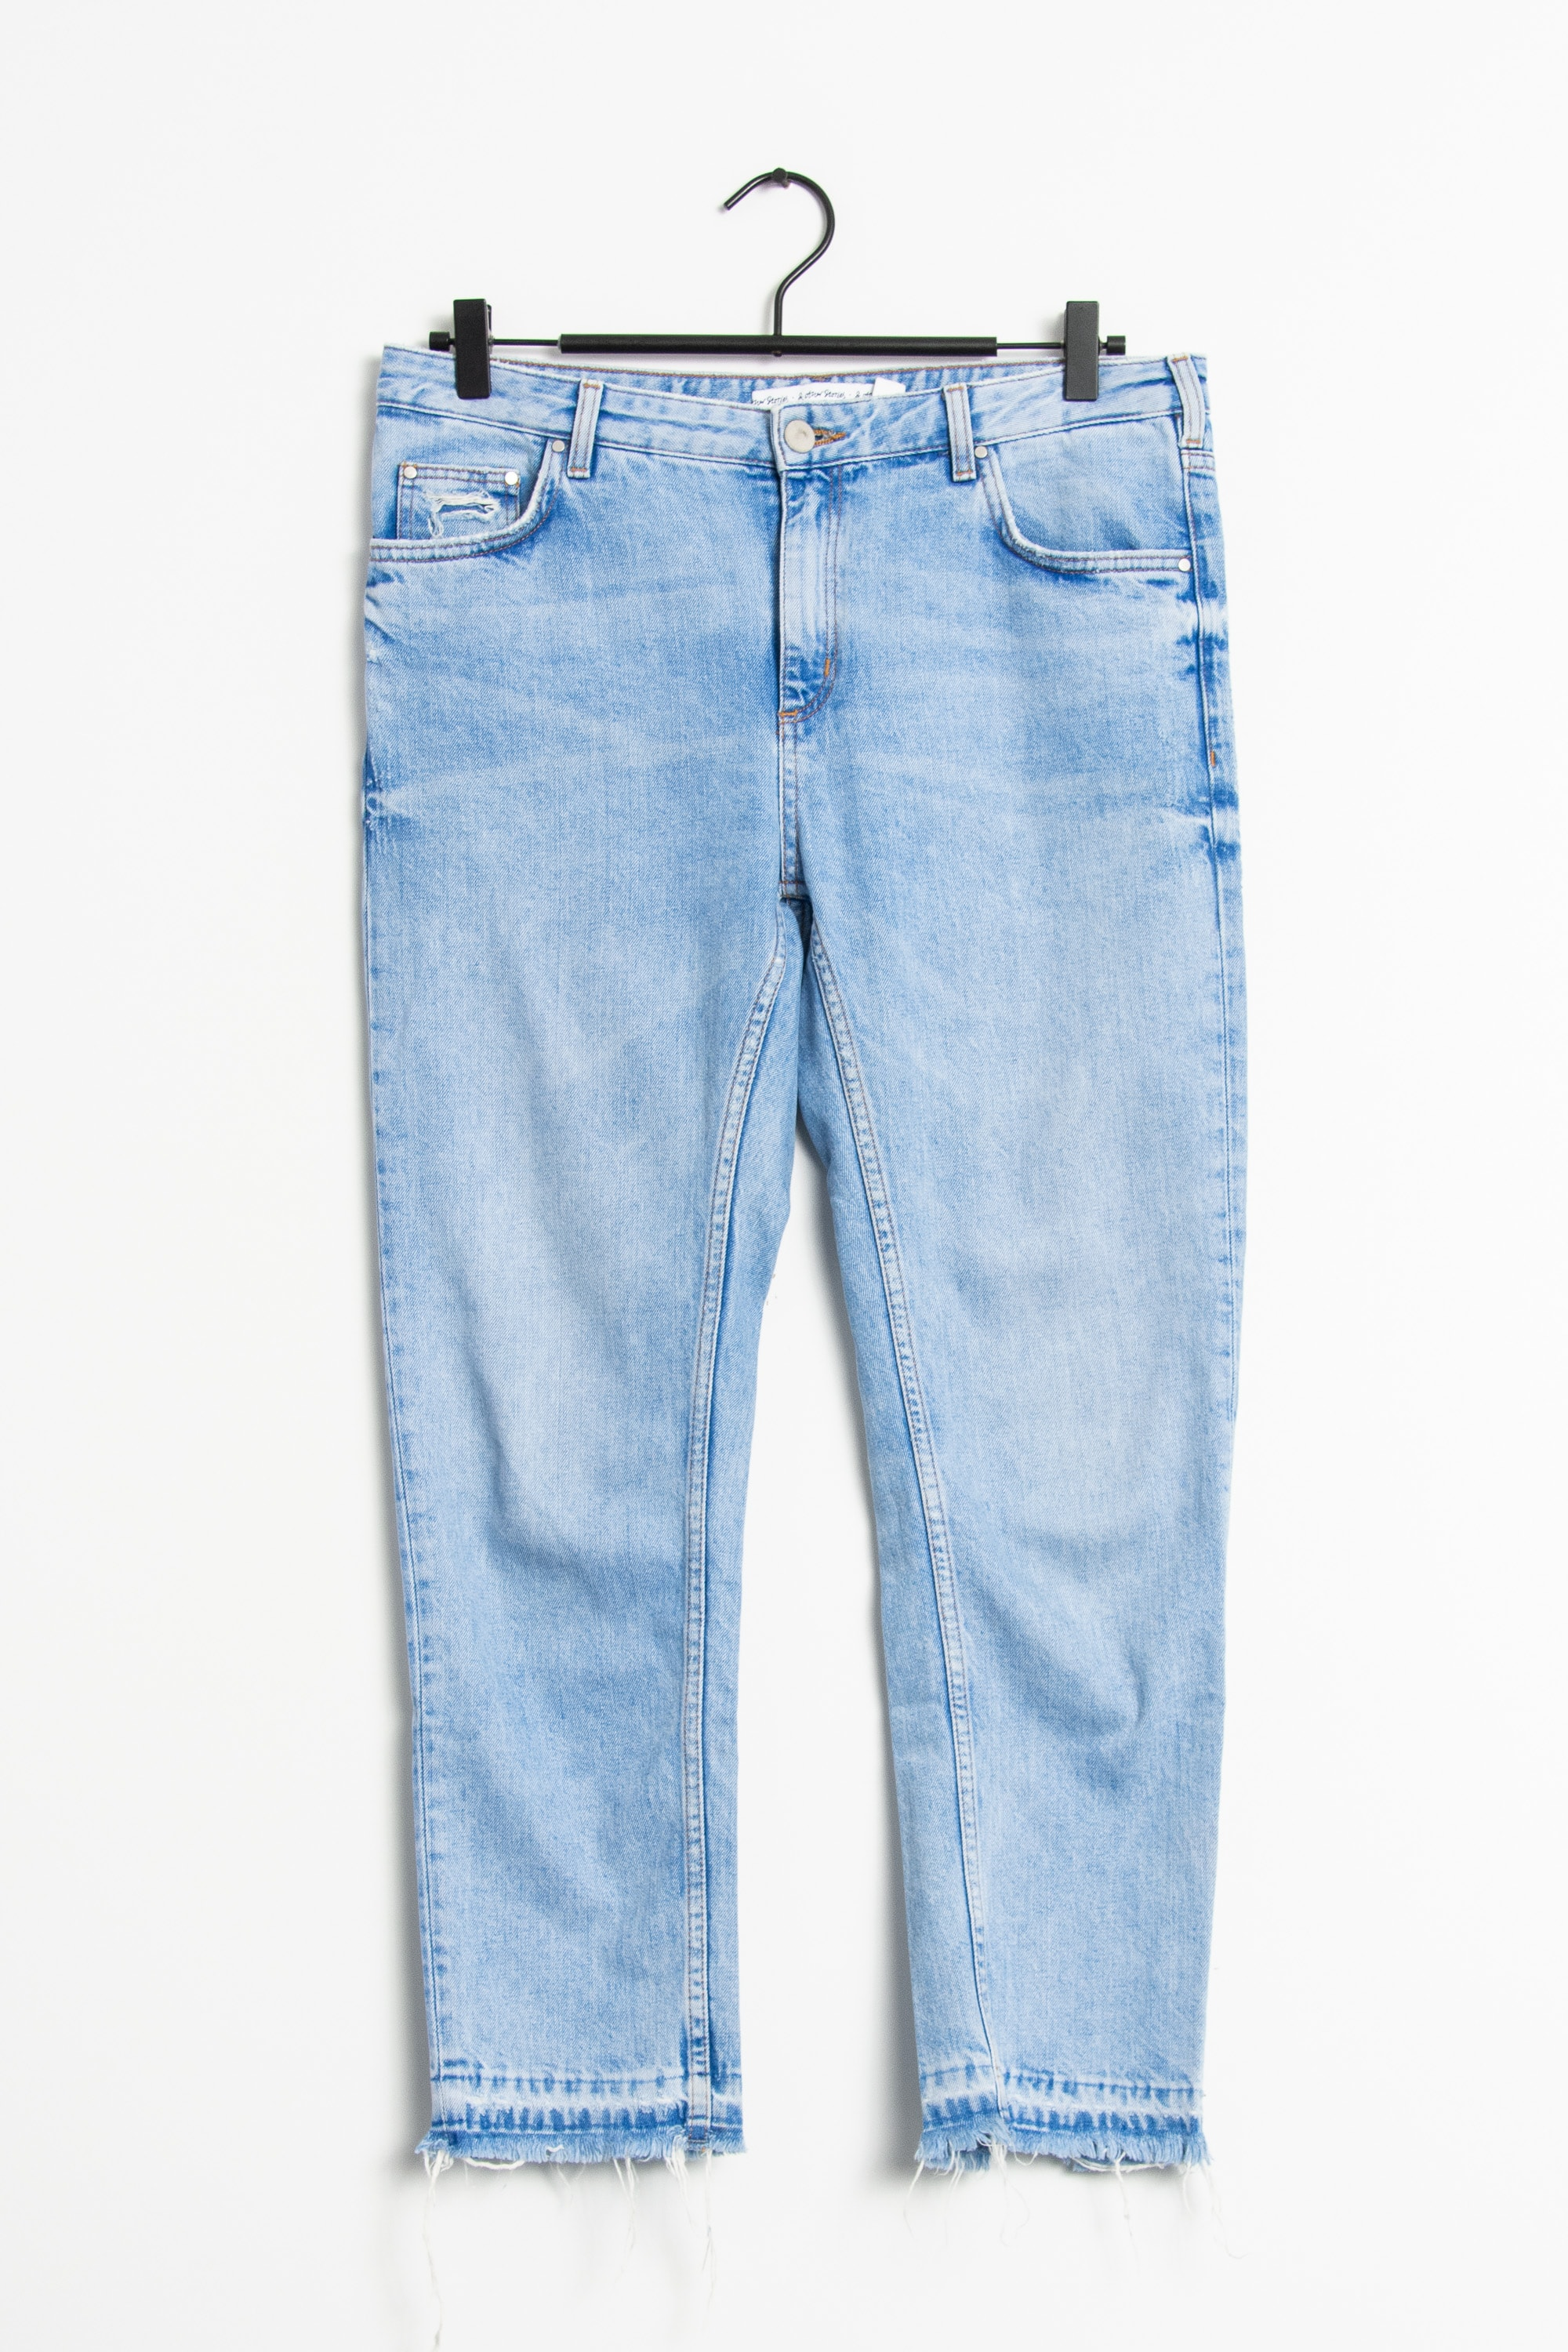 & other stories Jeans Blau Gr.XS